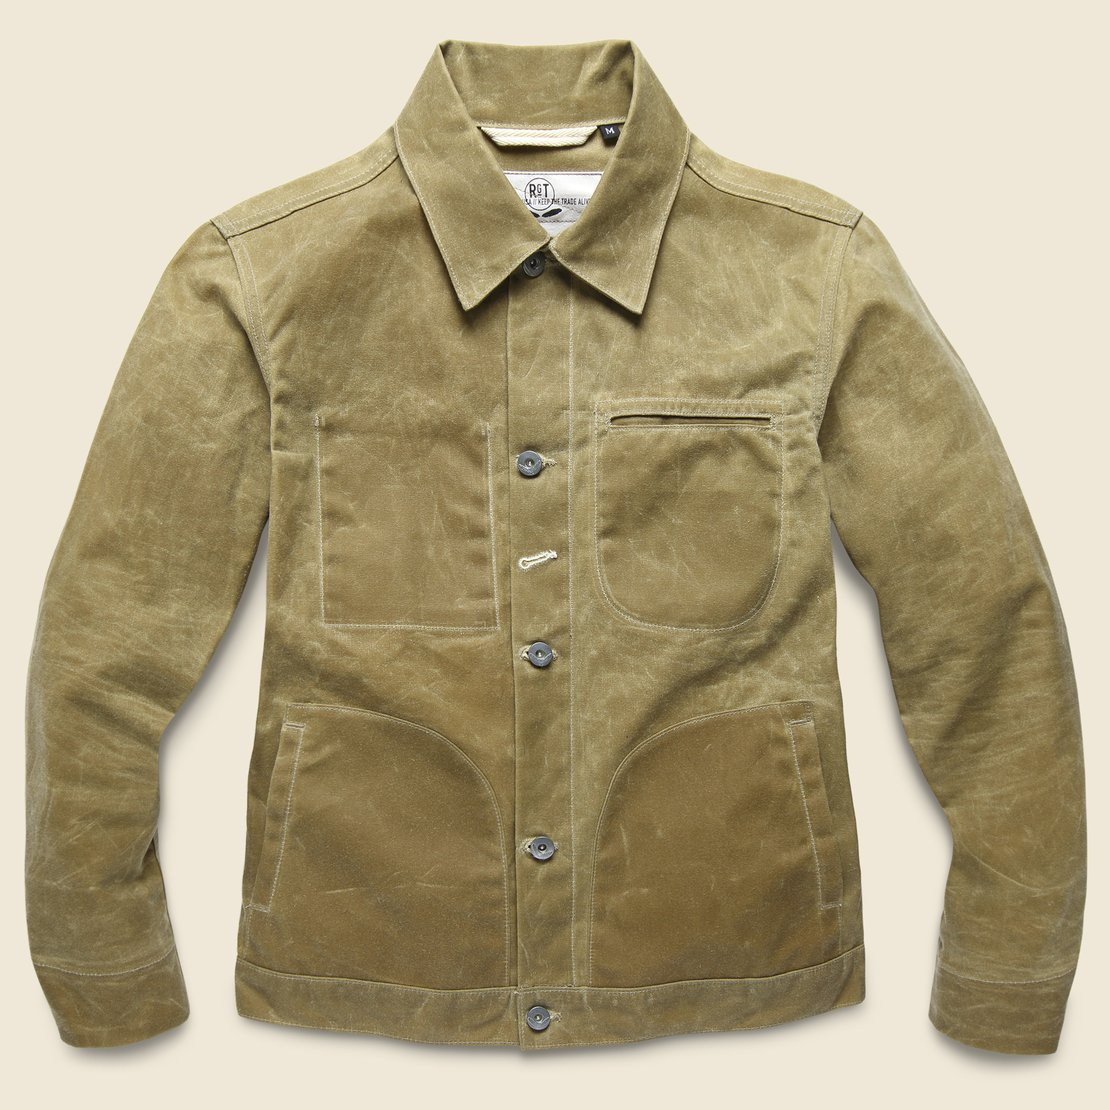 Rogue Territory Waxed Ridgeline Supply Jacket - Sunset Saguaro